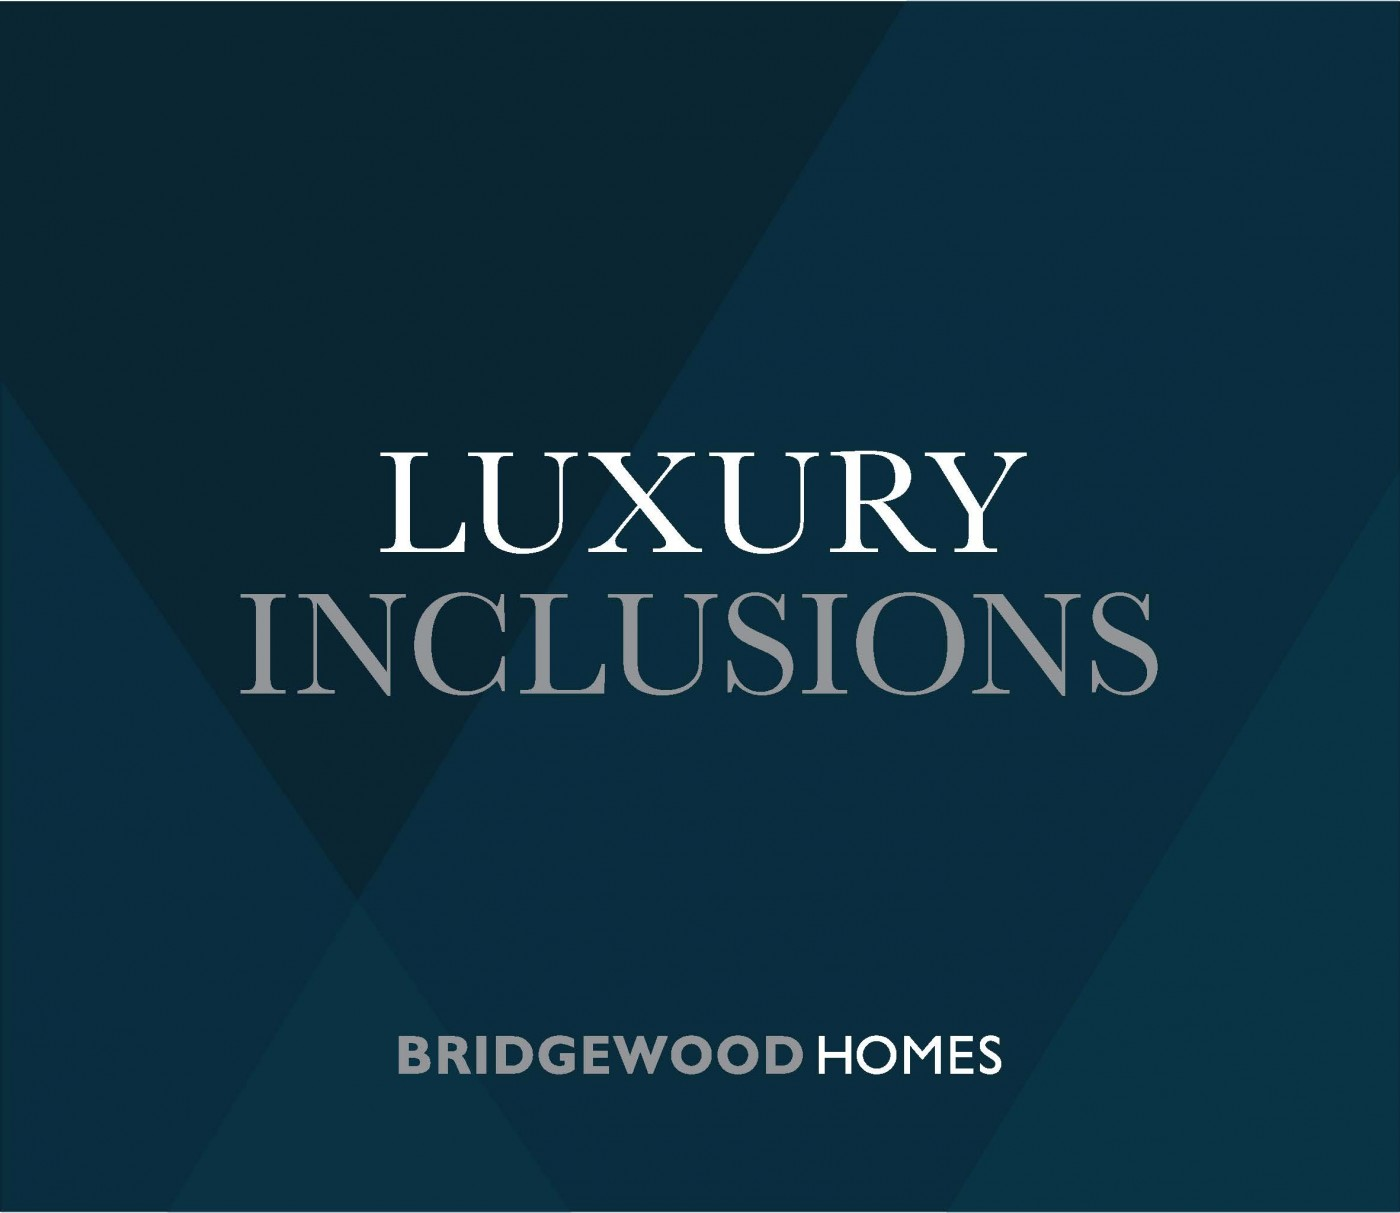 Luxury Inclusions